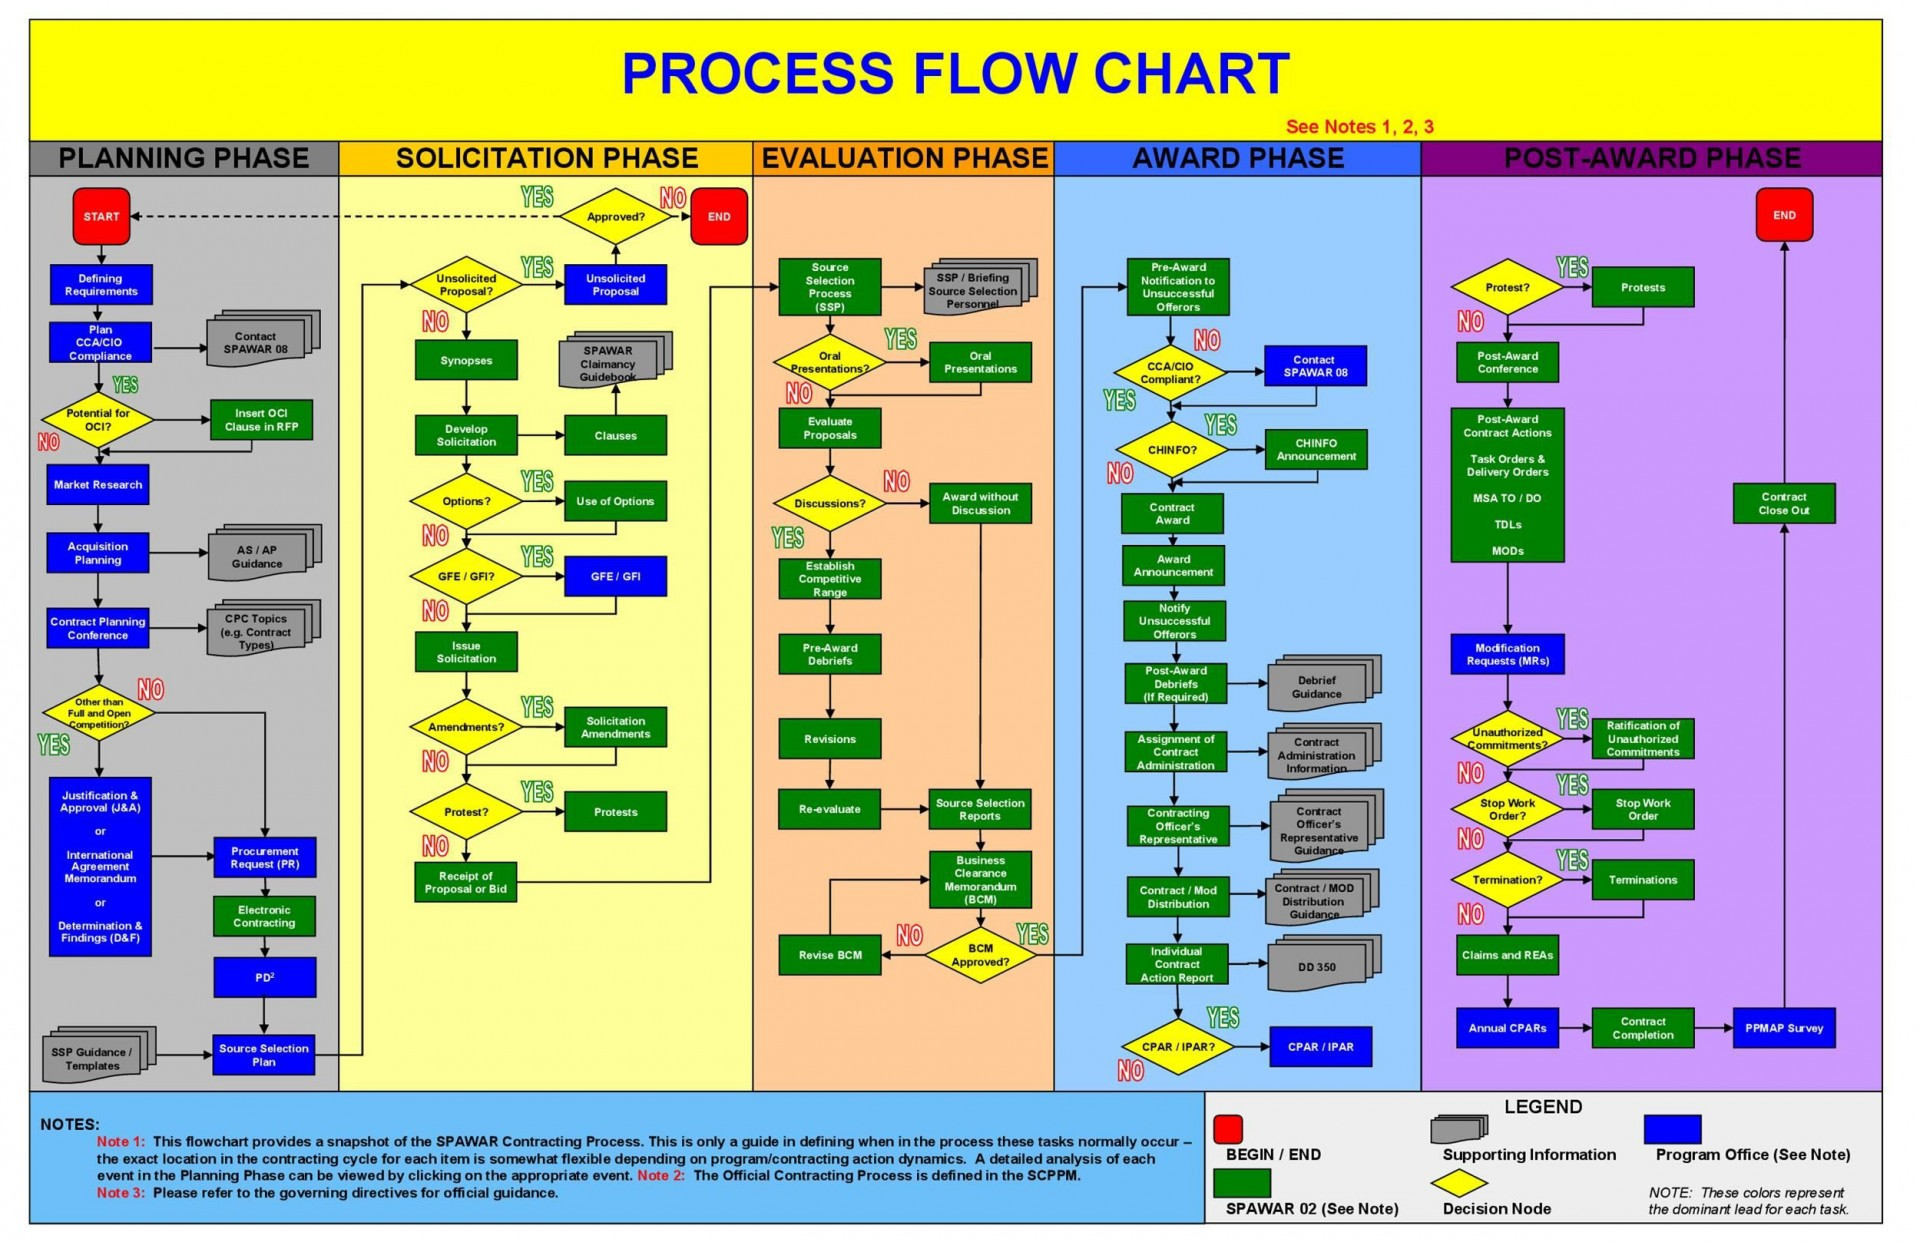 004 Breathtaking Flow Chart Template Excel Free Photo  Blank For Download1920